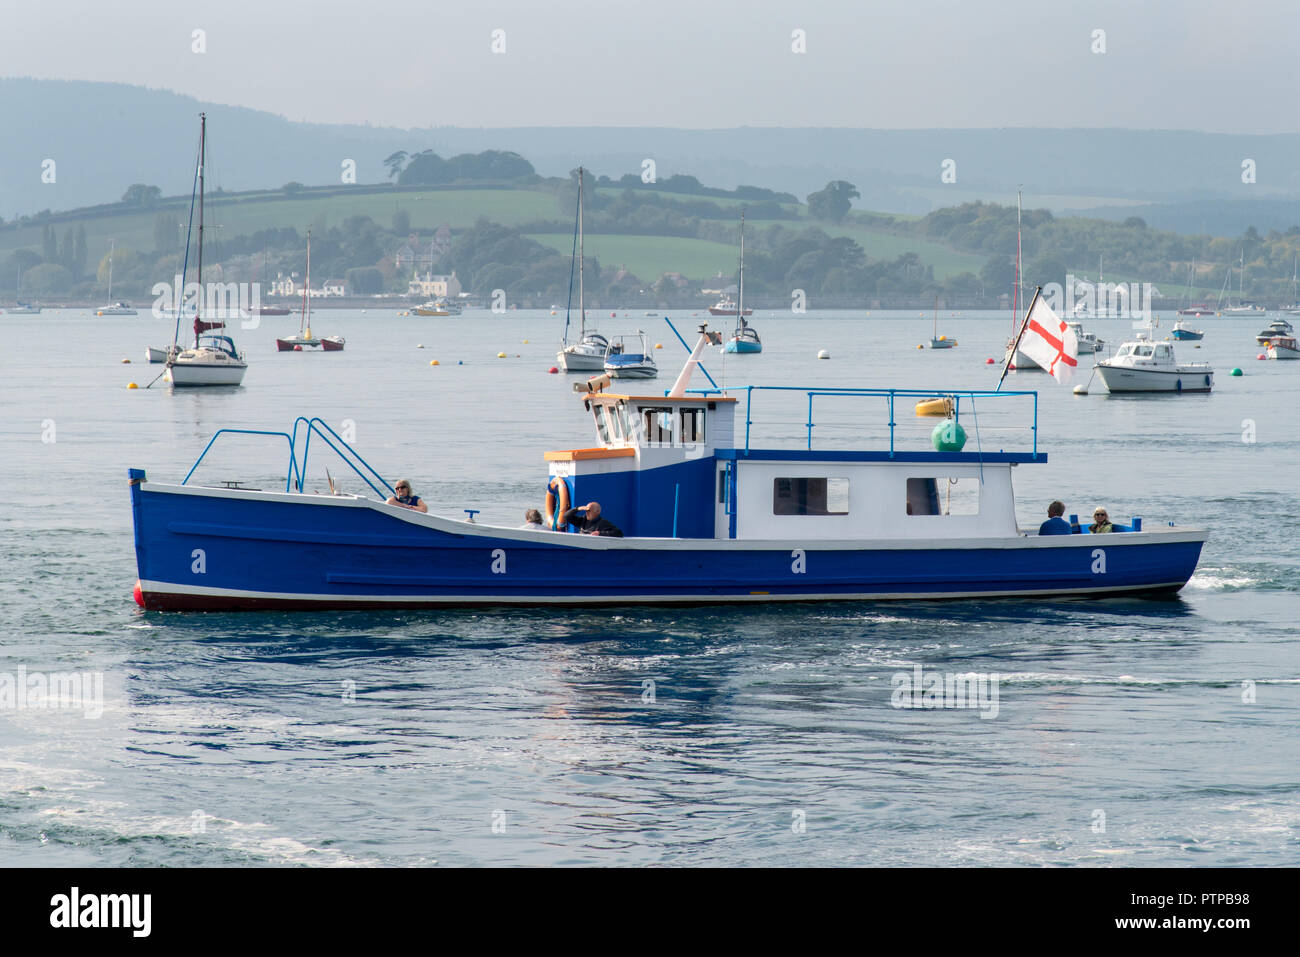 EXMOUTH, DEVON, UK - 05OCT2018:  Princess Marina is one of the boats used to operate the ferry service across the River Exe Estuary to Starcross - Stock Image